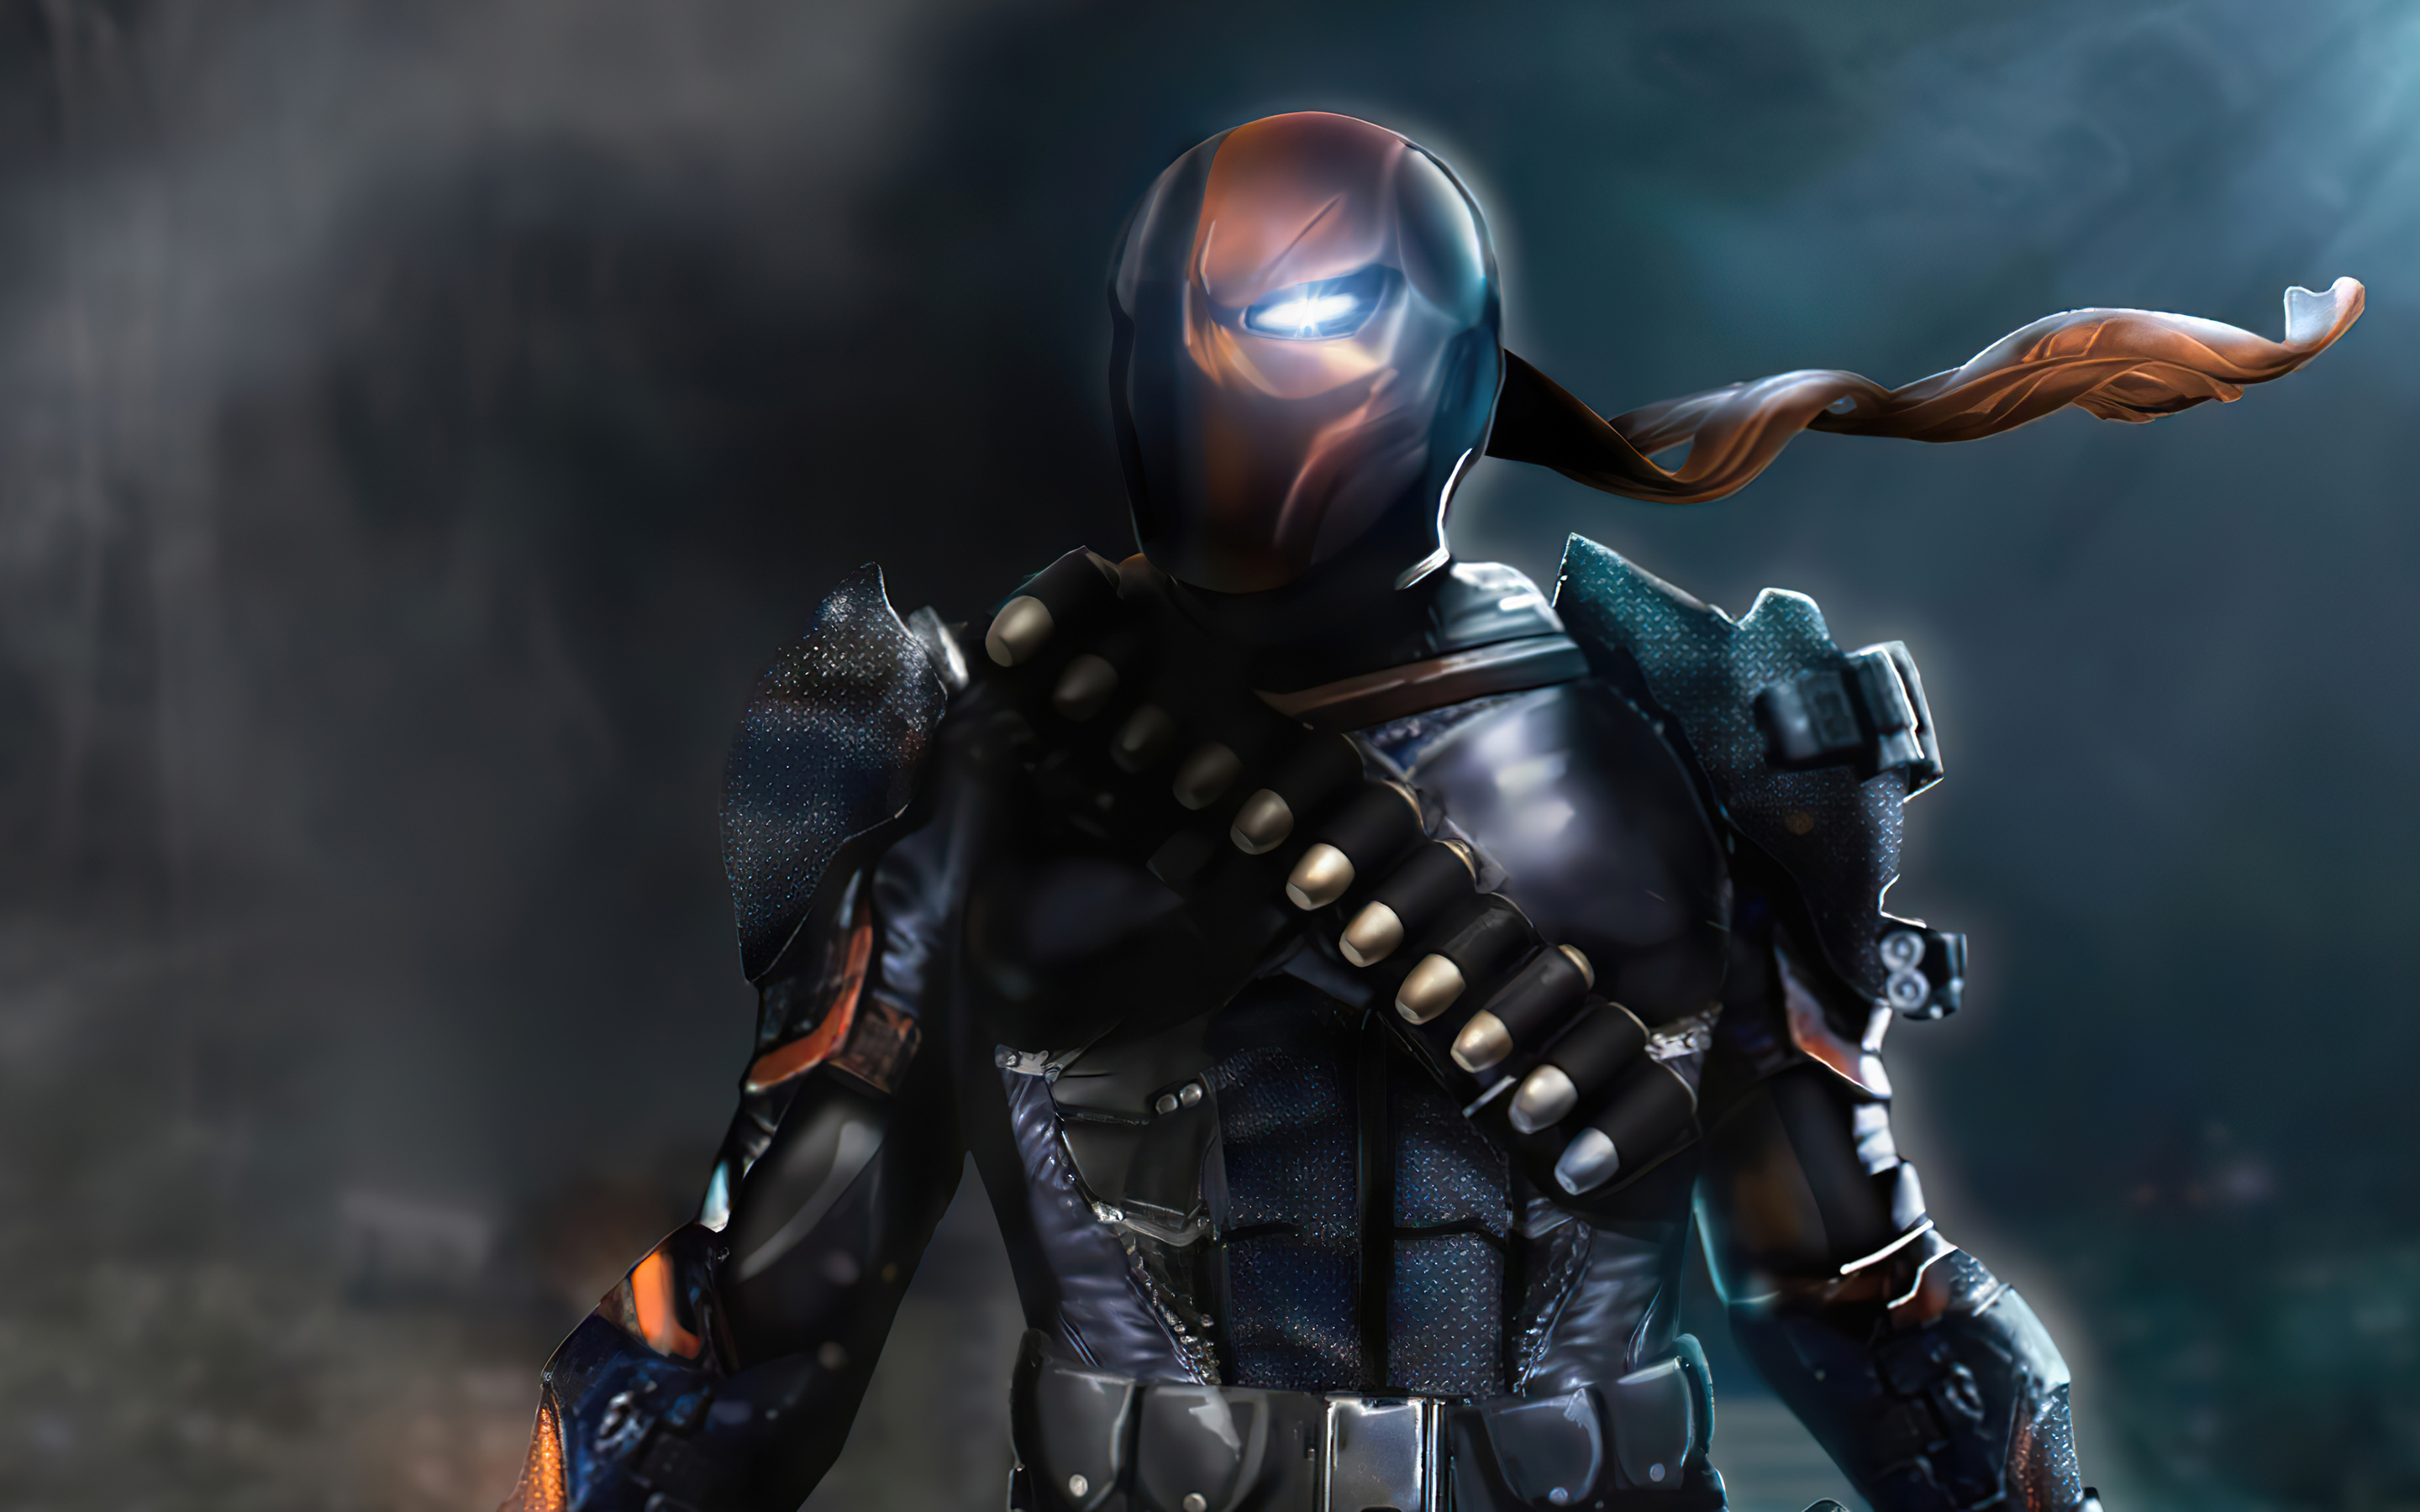 2020-deathstroke-4k-artwork-7w.jpg